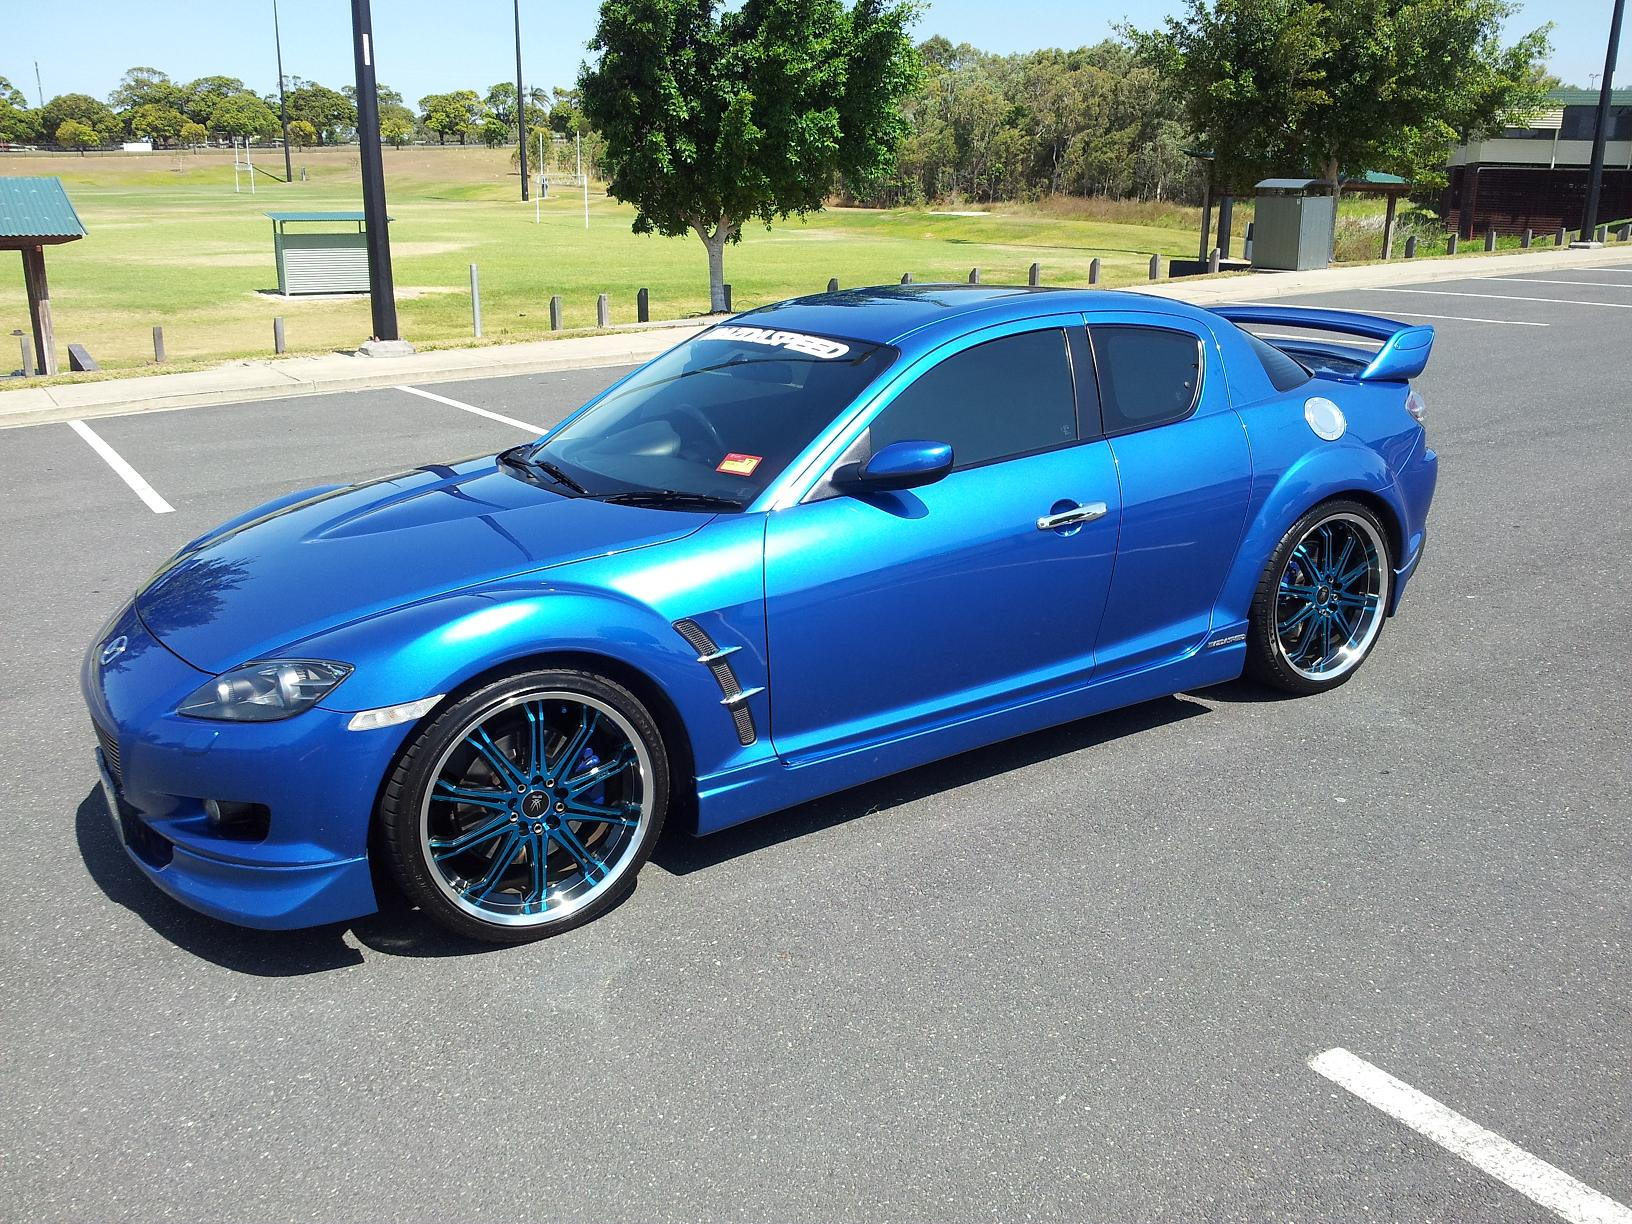 2007 mazda rx 8 my06 for sale qld brisbane north. Black Bedroom Furniture Sets. Home Design Ideas